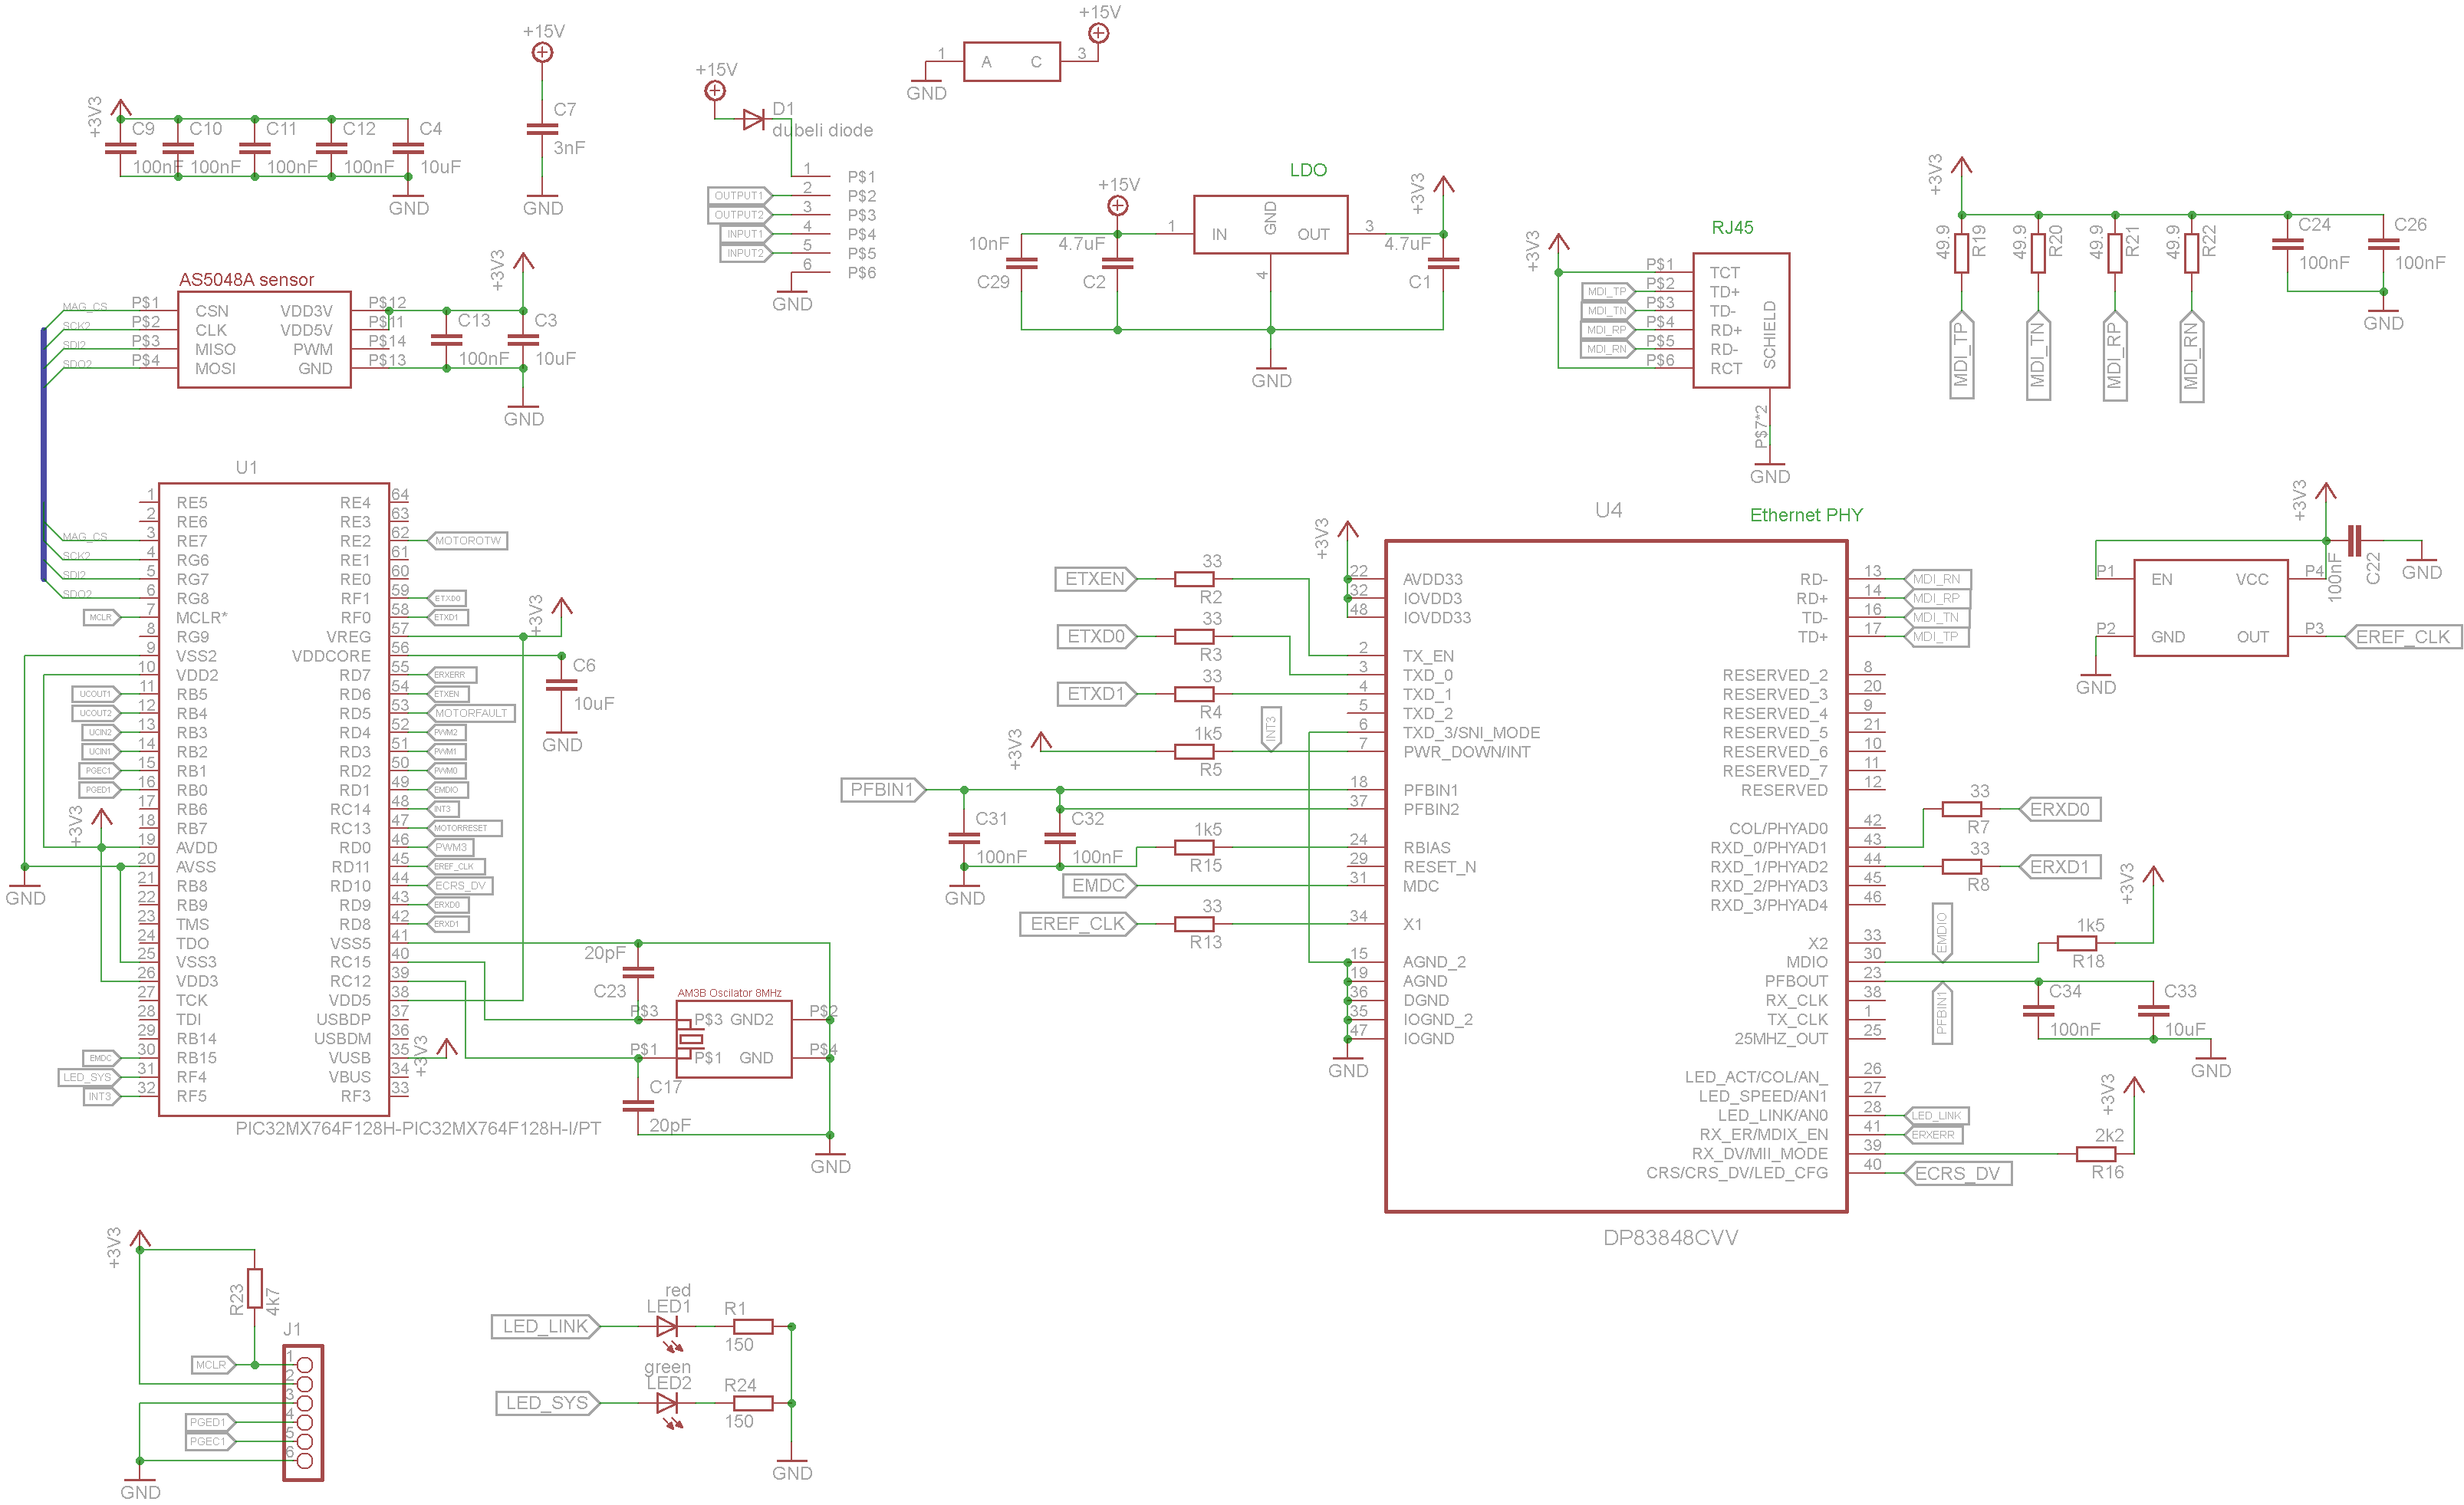 Pic32mx764 64pin And Ethernet Phy Schematics Beginner